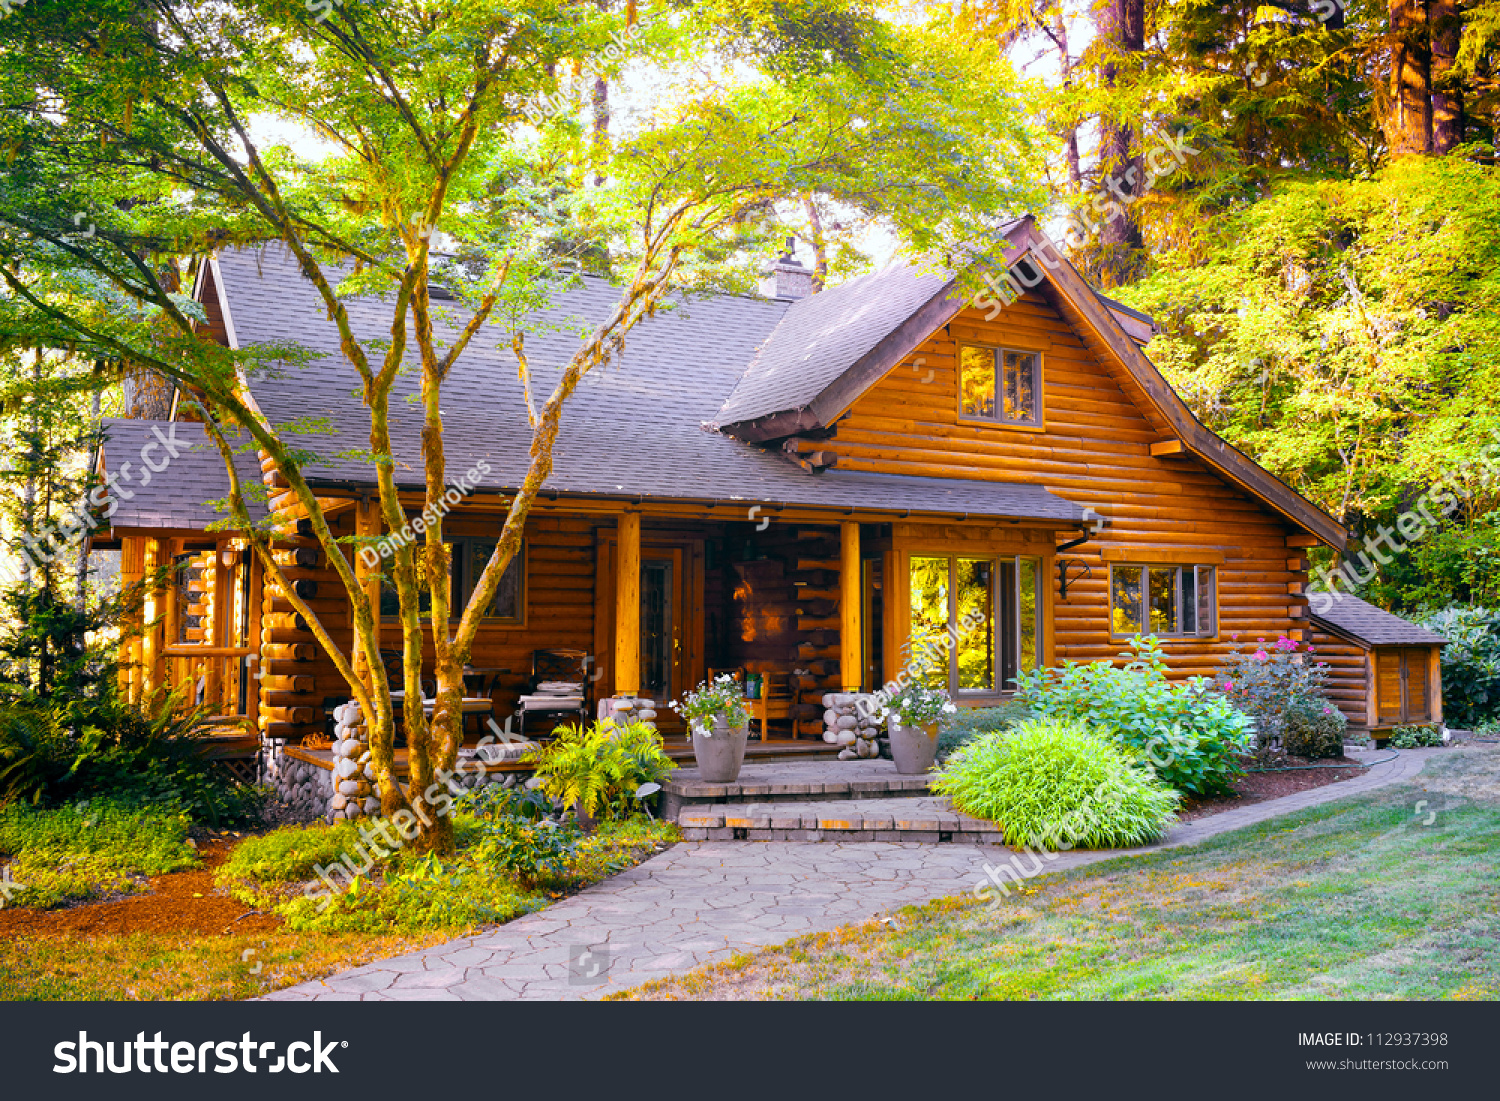 Modern log cabin home forest environment stock photo for Contemporary log cabins